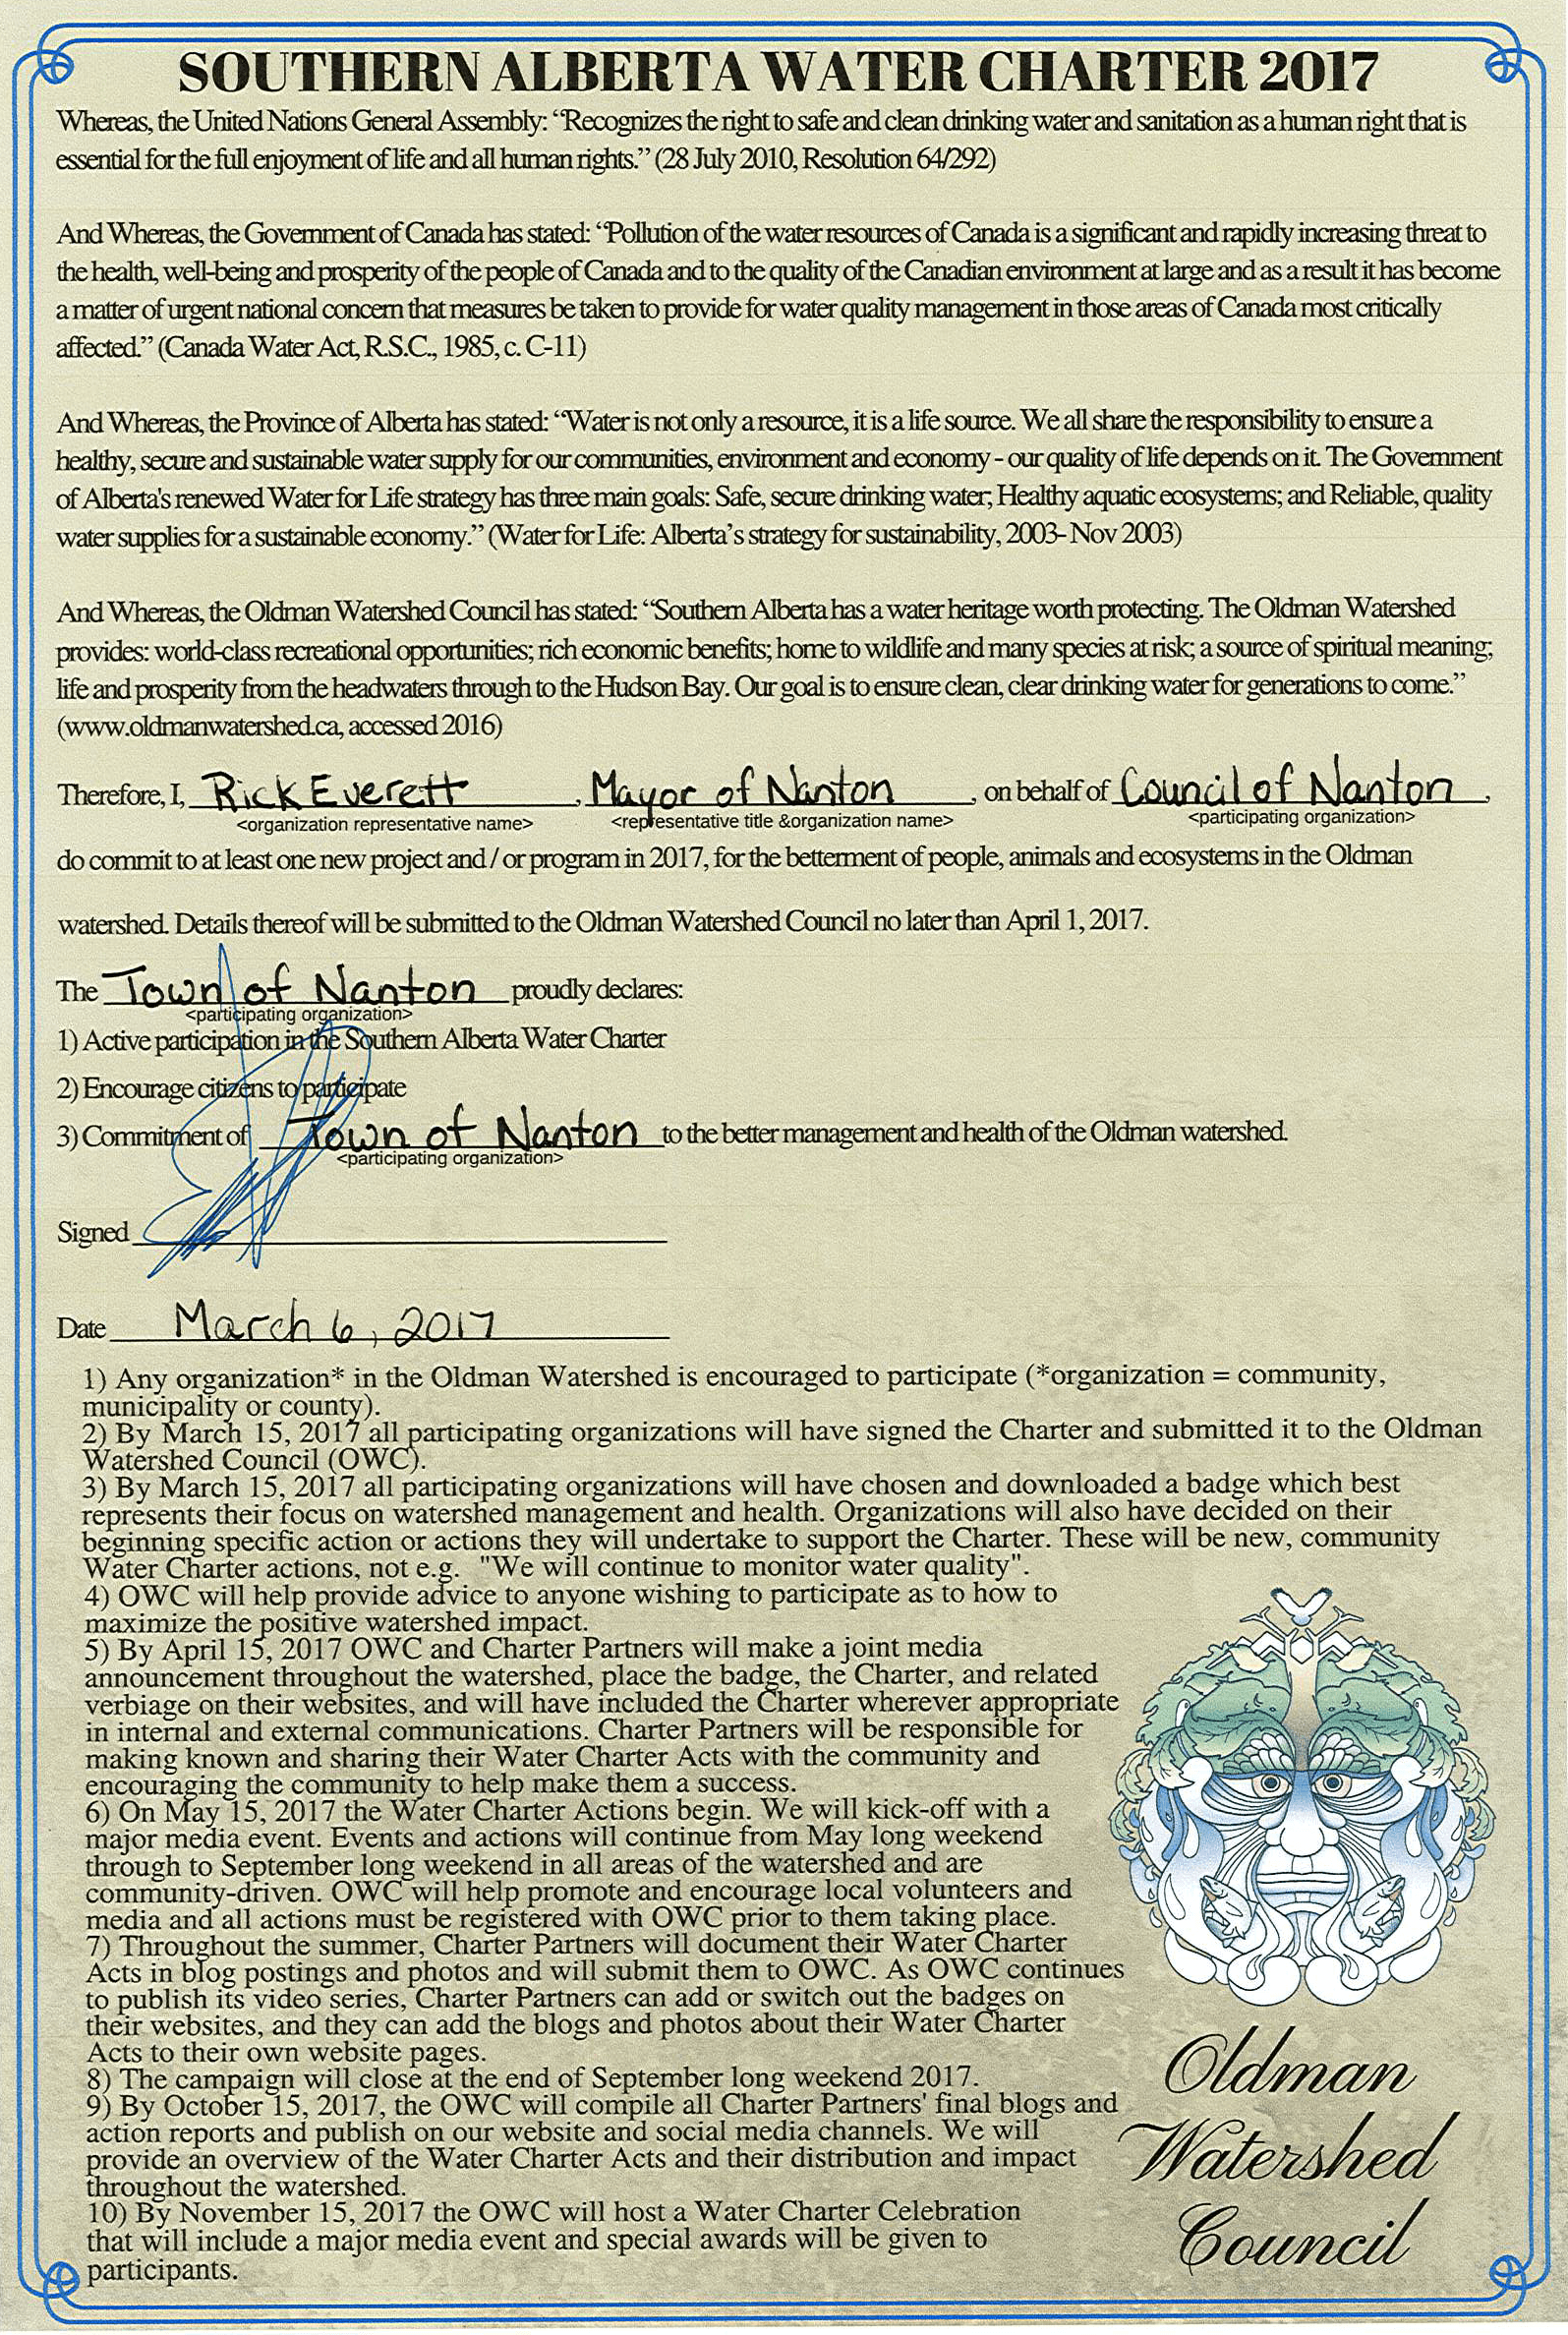 TownofNanton_WaterCharter(signed)